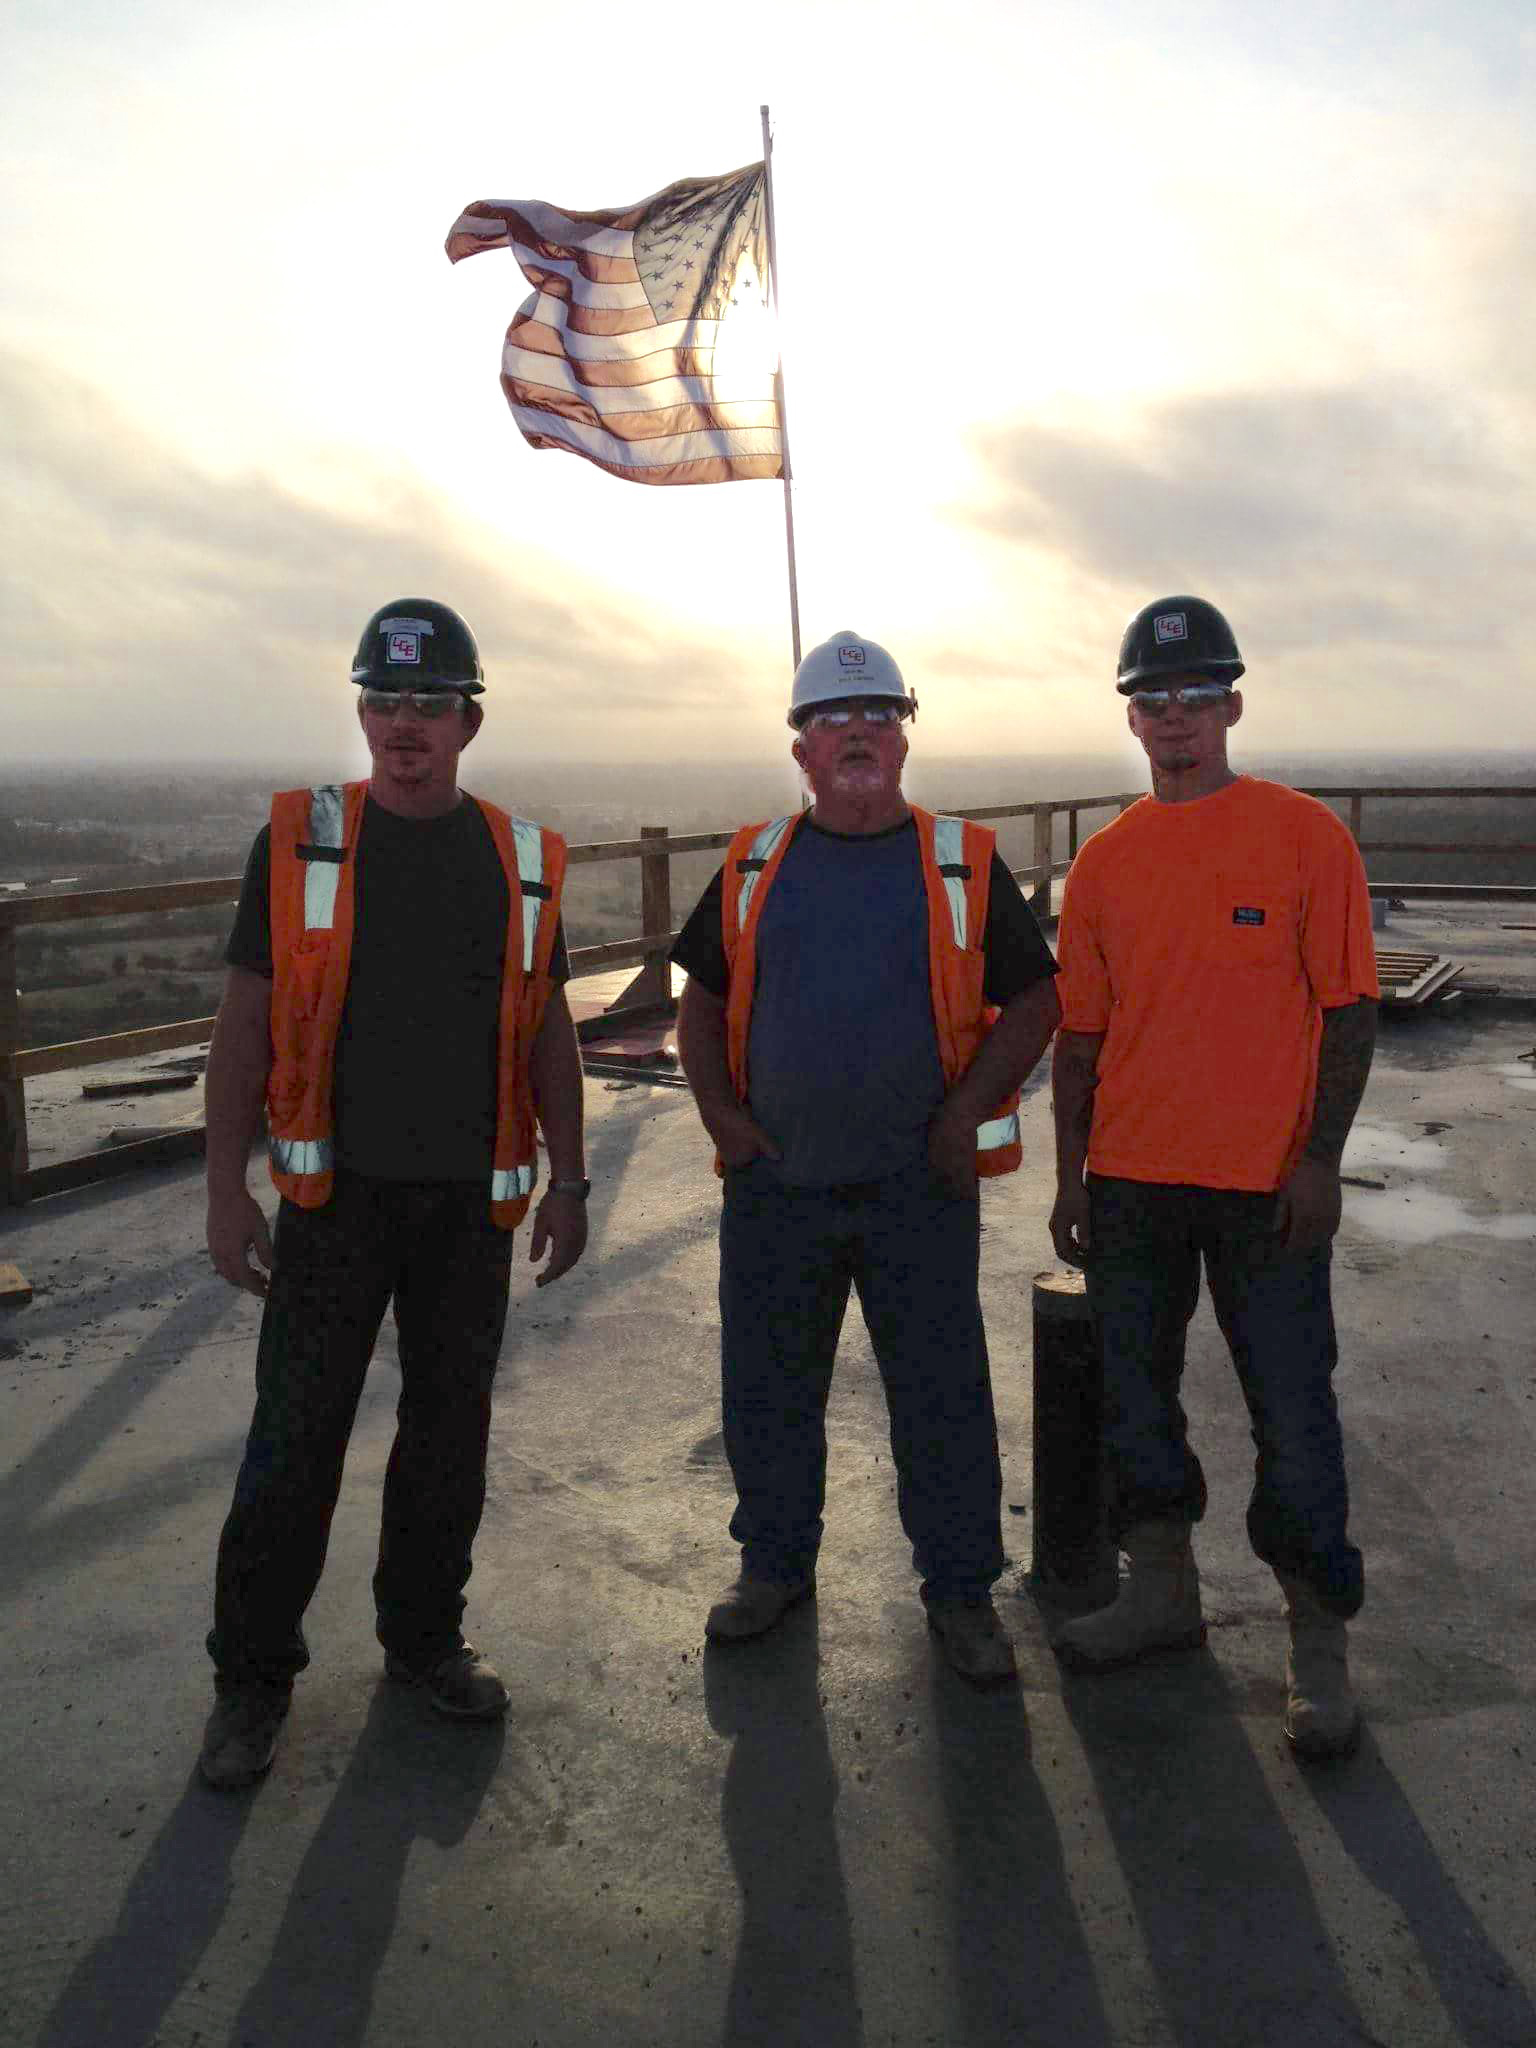 Timothy Loy, far right, stands on the roof of the Golden Nugget Casino in Lake Charles, Louisiana. Next to him are father and son Richard and Dale Johnson, both of whom are electrical journeyman.